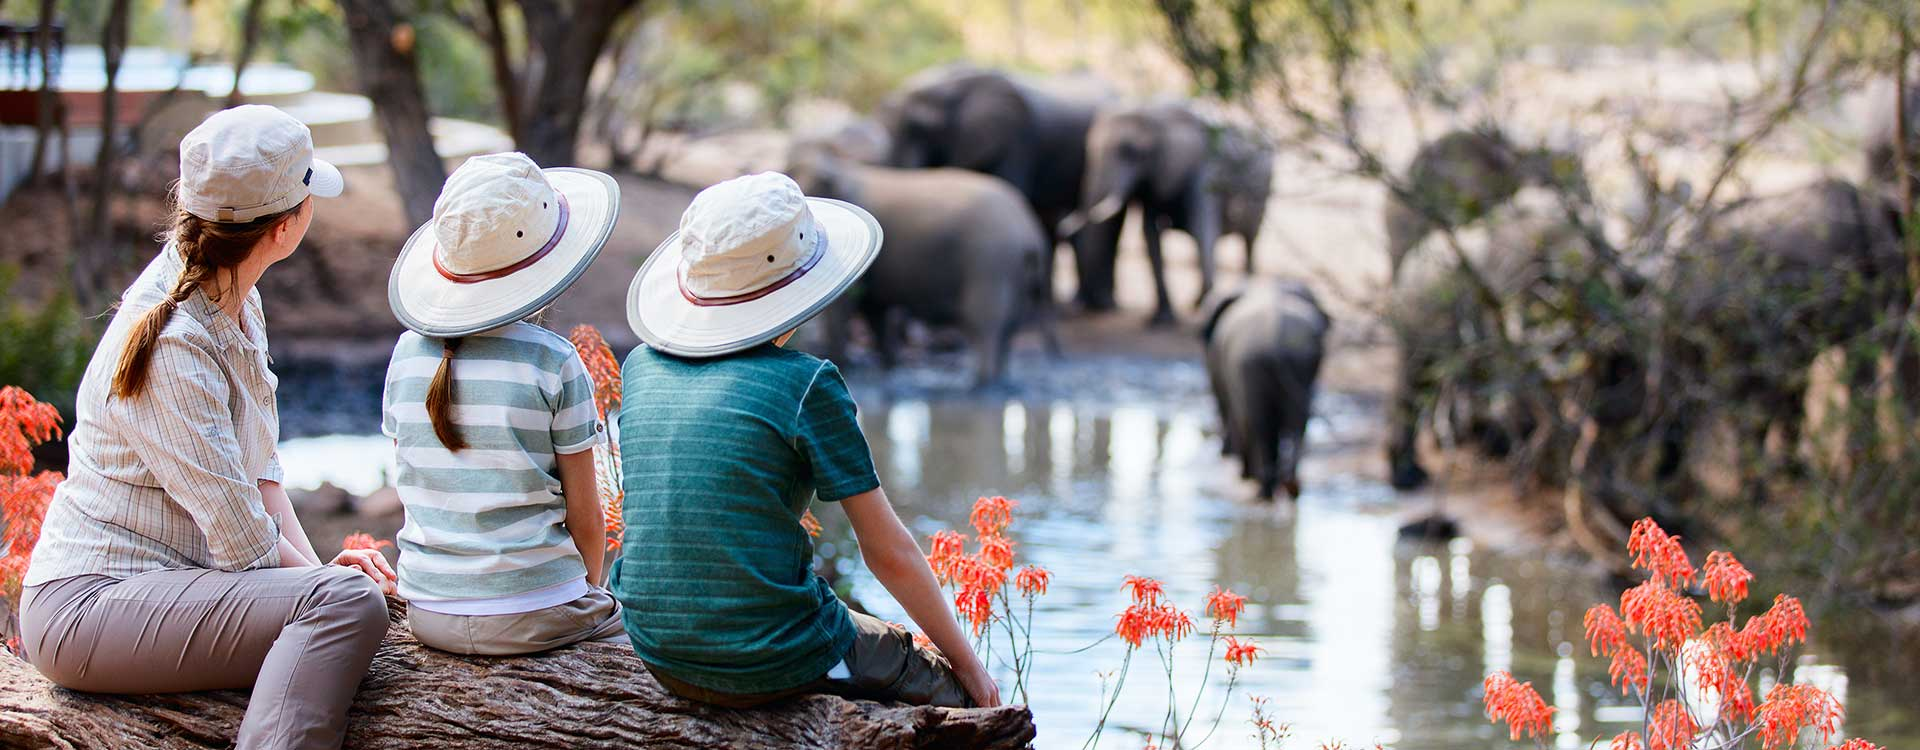 Six Greatest Safaris in Africa in 2020